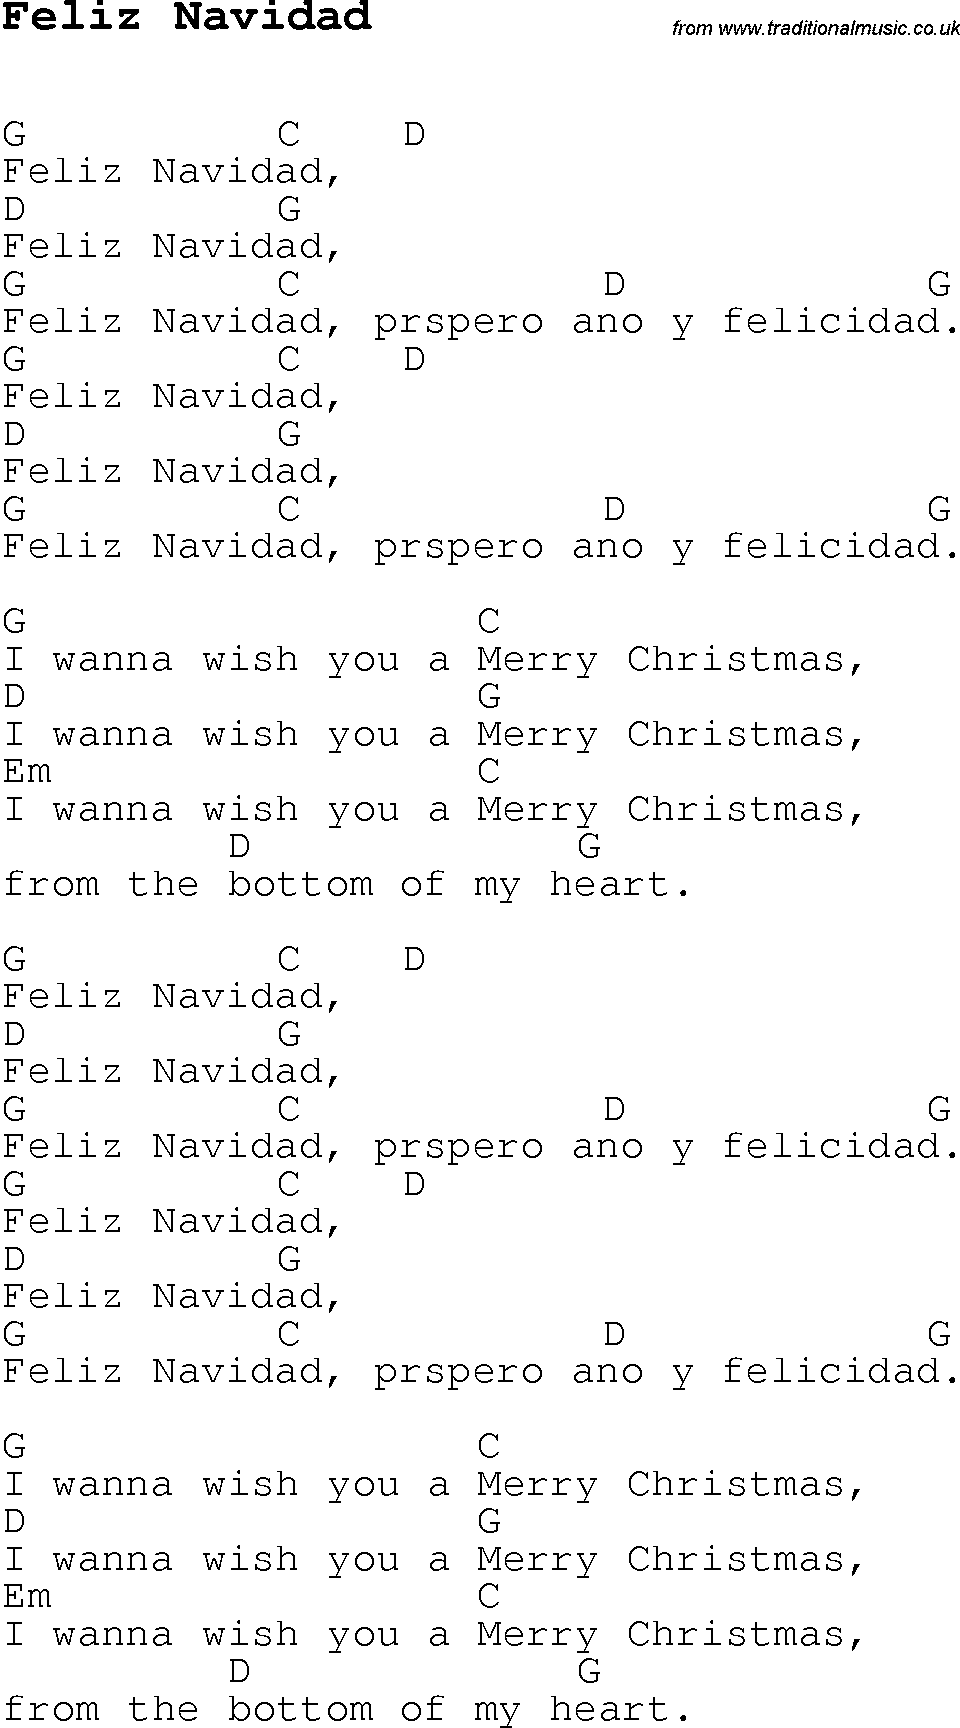 Christmas songs and carols lyrics with chords for guitar banjo christmas songs and carols lyrics with chords for guitar banjo for feliz navidad hexwebz Images